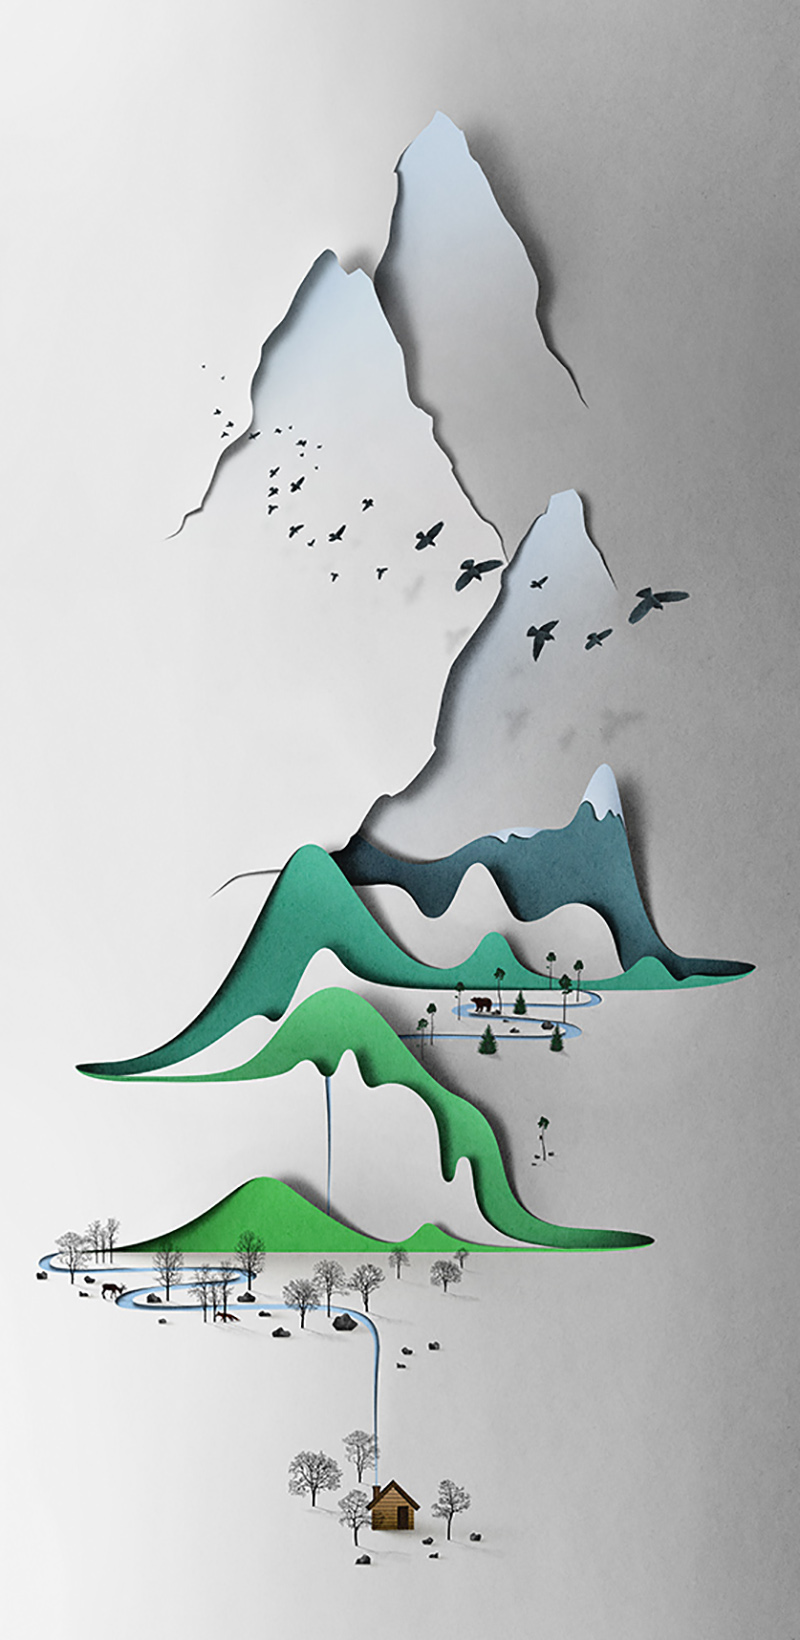 Digital Papercut Illustration - Eiko Ojala